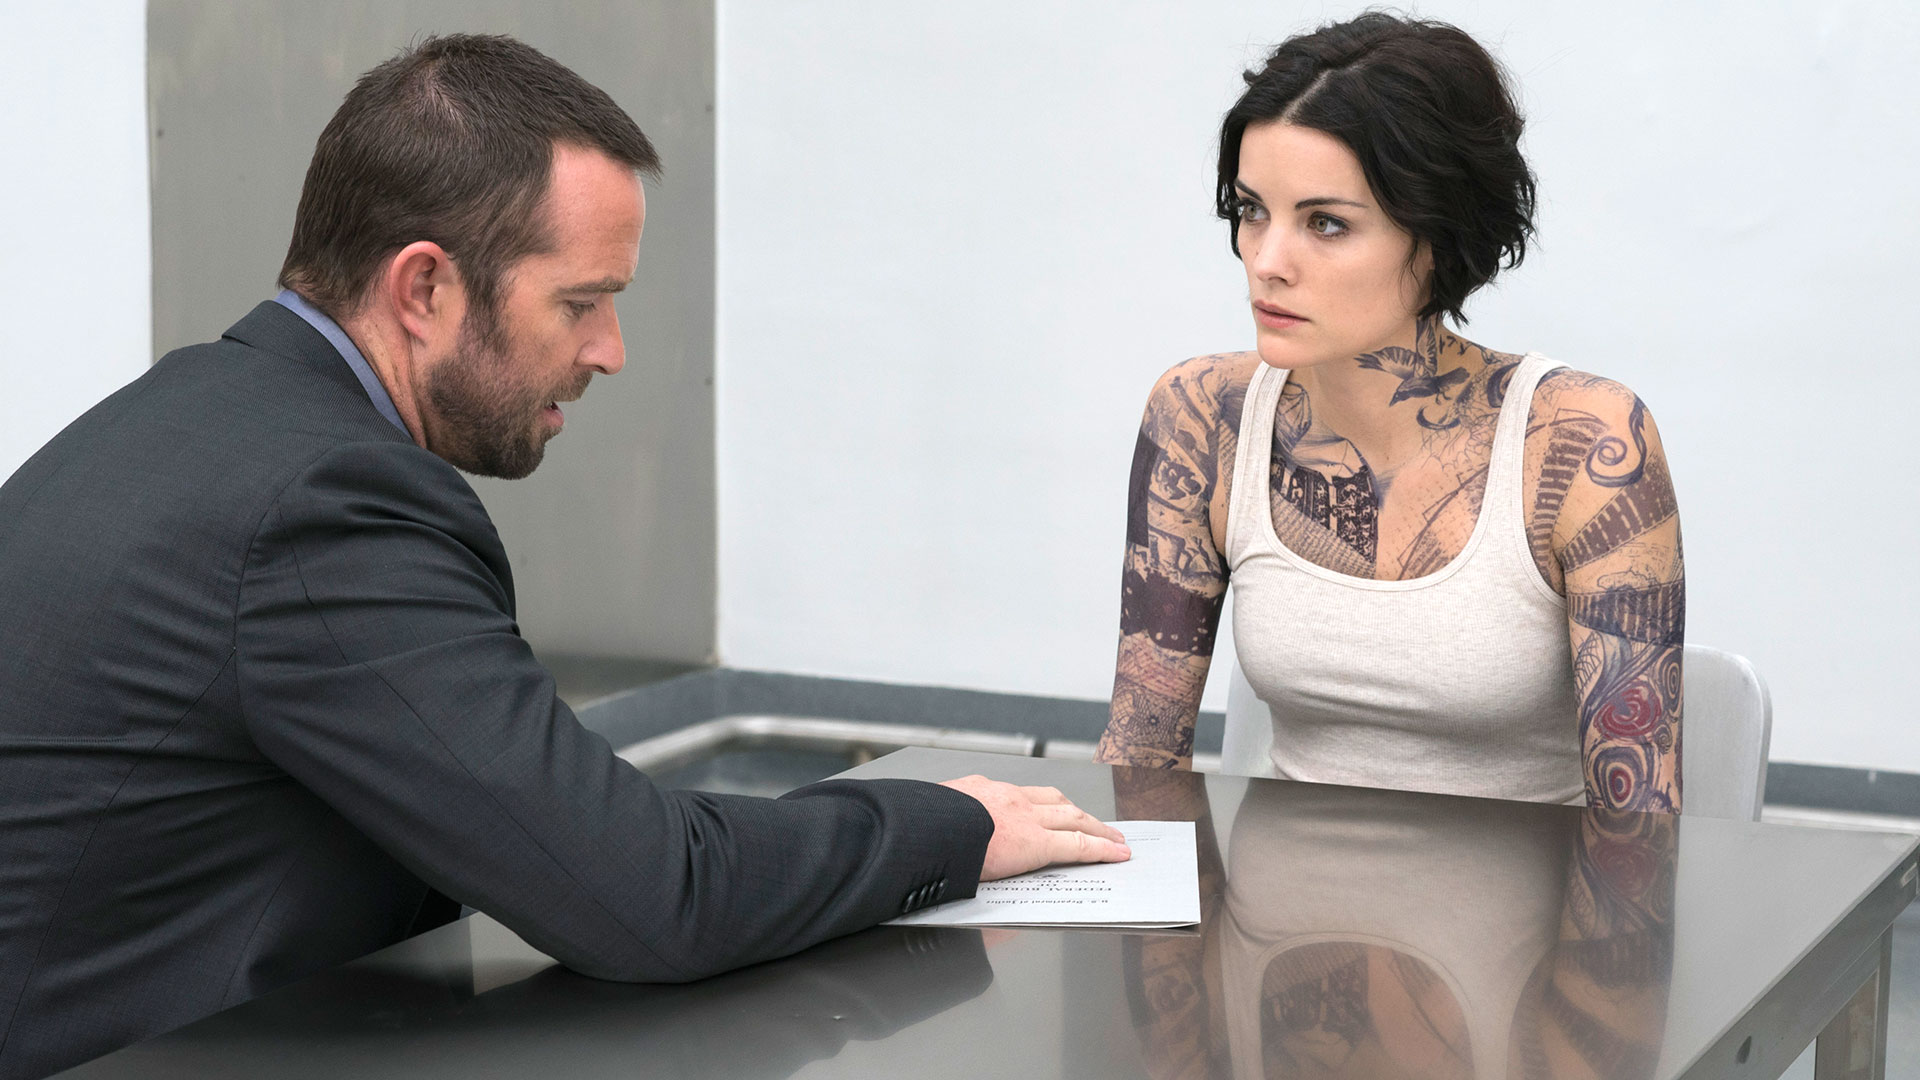 Blindspot season 2 confirmed at nbc for Tv show with tattooed woman